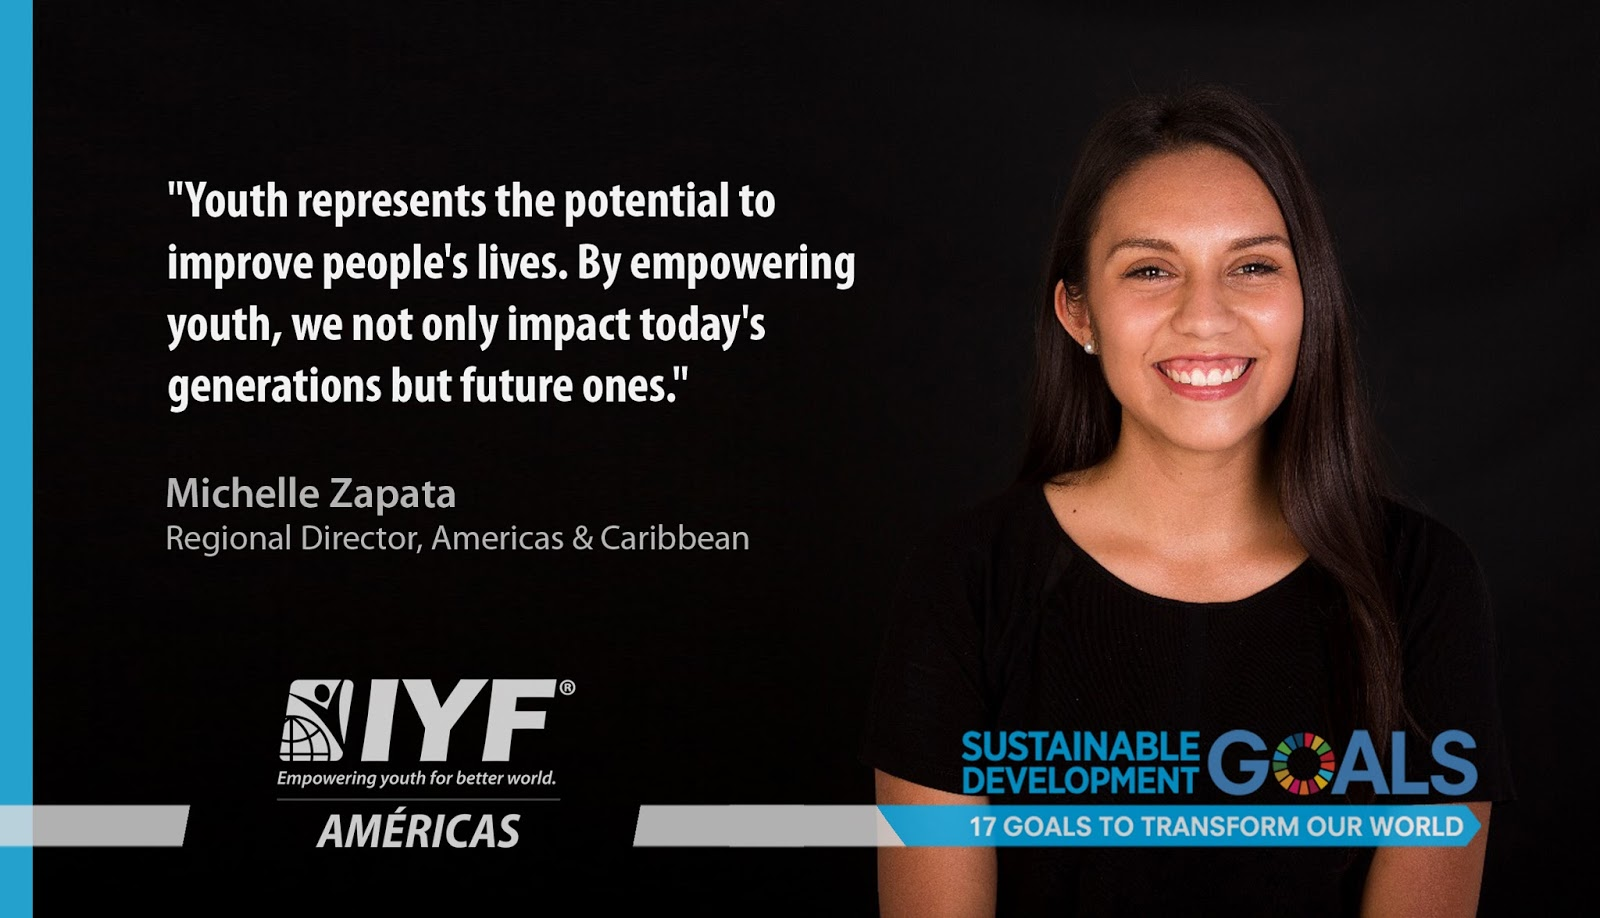 Michelle Zapata, IYF Regional Director, Americas & the Caribbean